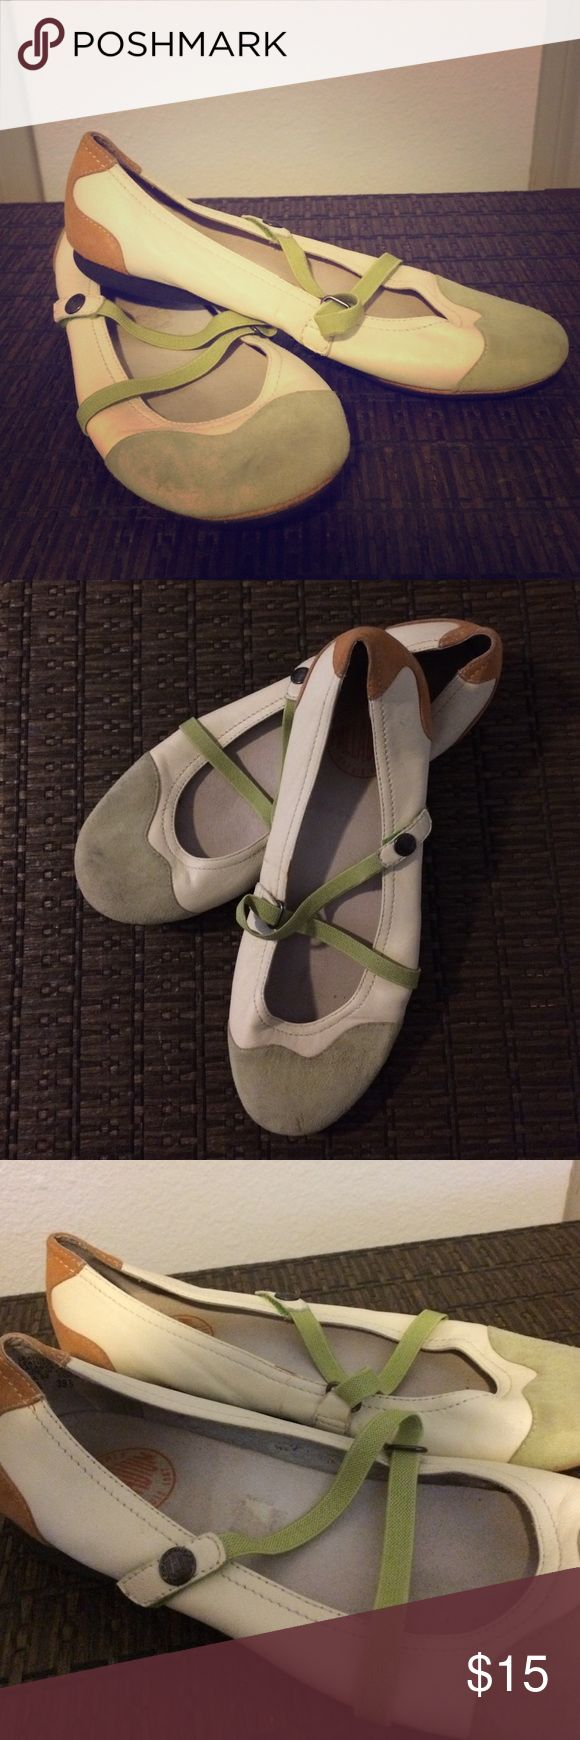 Women's Palladium Leather Ballet Flats L'Originale Palladium Depuis 1947. Casual flats with European details. Zig- zag green straps. Leather shoes with leather inner soles. Off white shoes with brown toward the back and light green on the front. These fun, versatile shoes can easily be dressed up or down. They are gently worn. Palladium Shoes Flats & Loafers